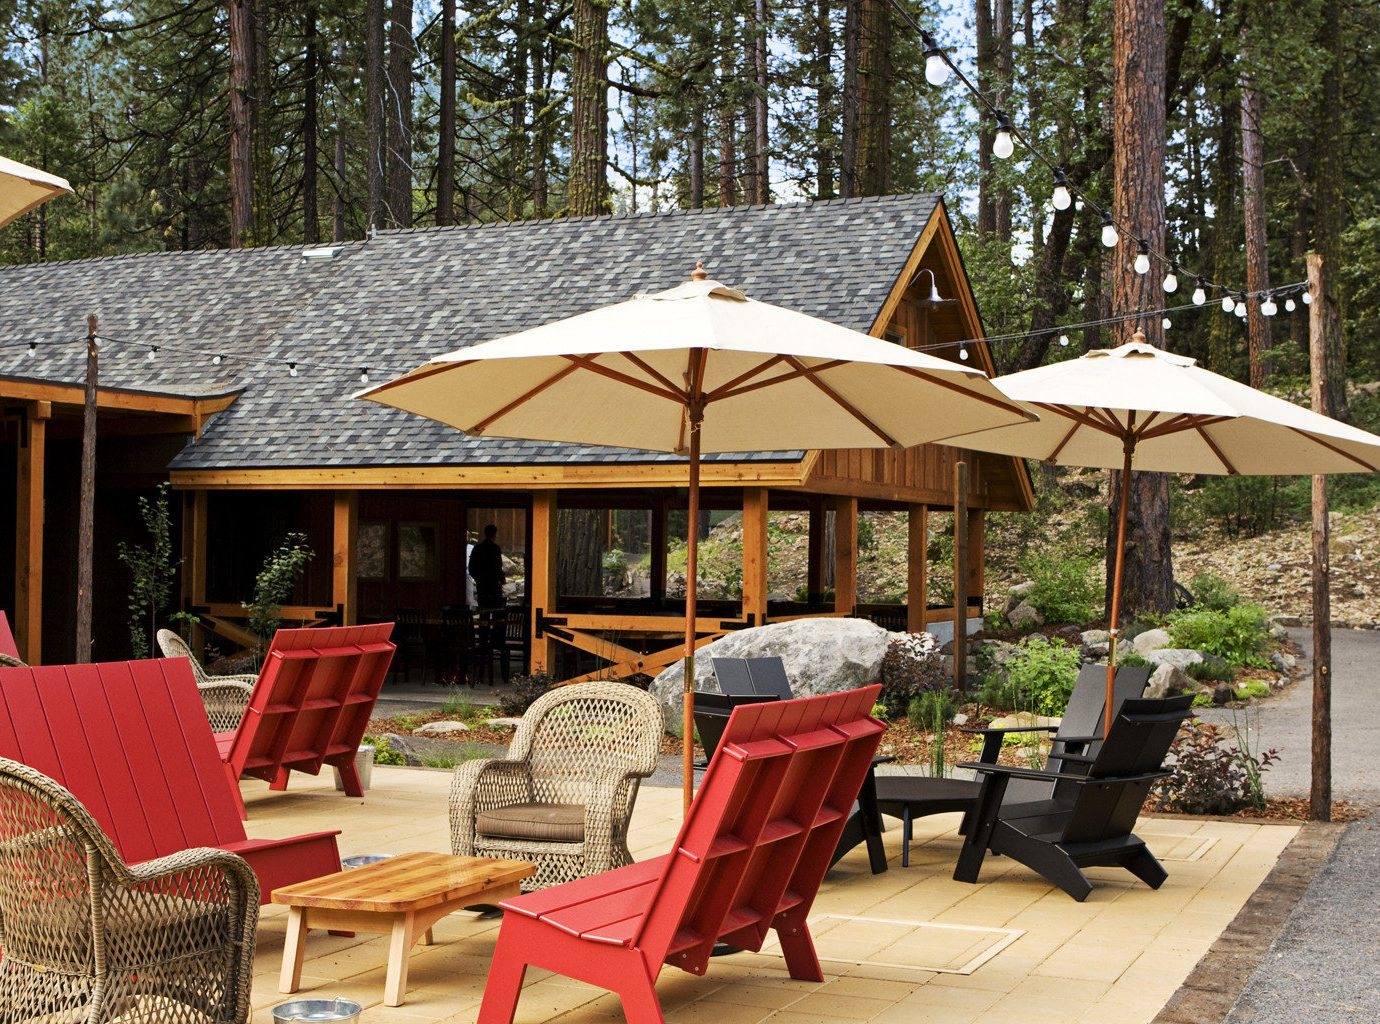 tree chair ground Picnic gazebo cottage outdoor structure backyard home tent Resort restaurant Patio Dining canopy set